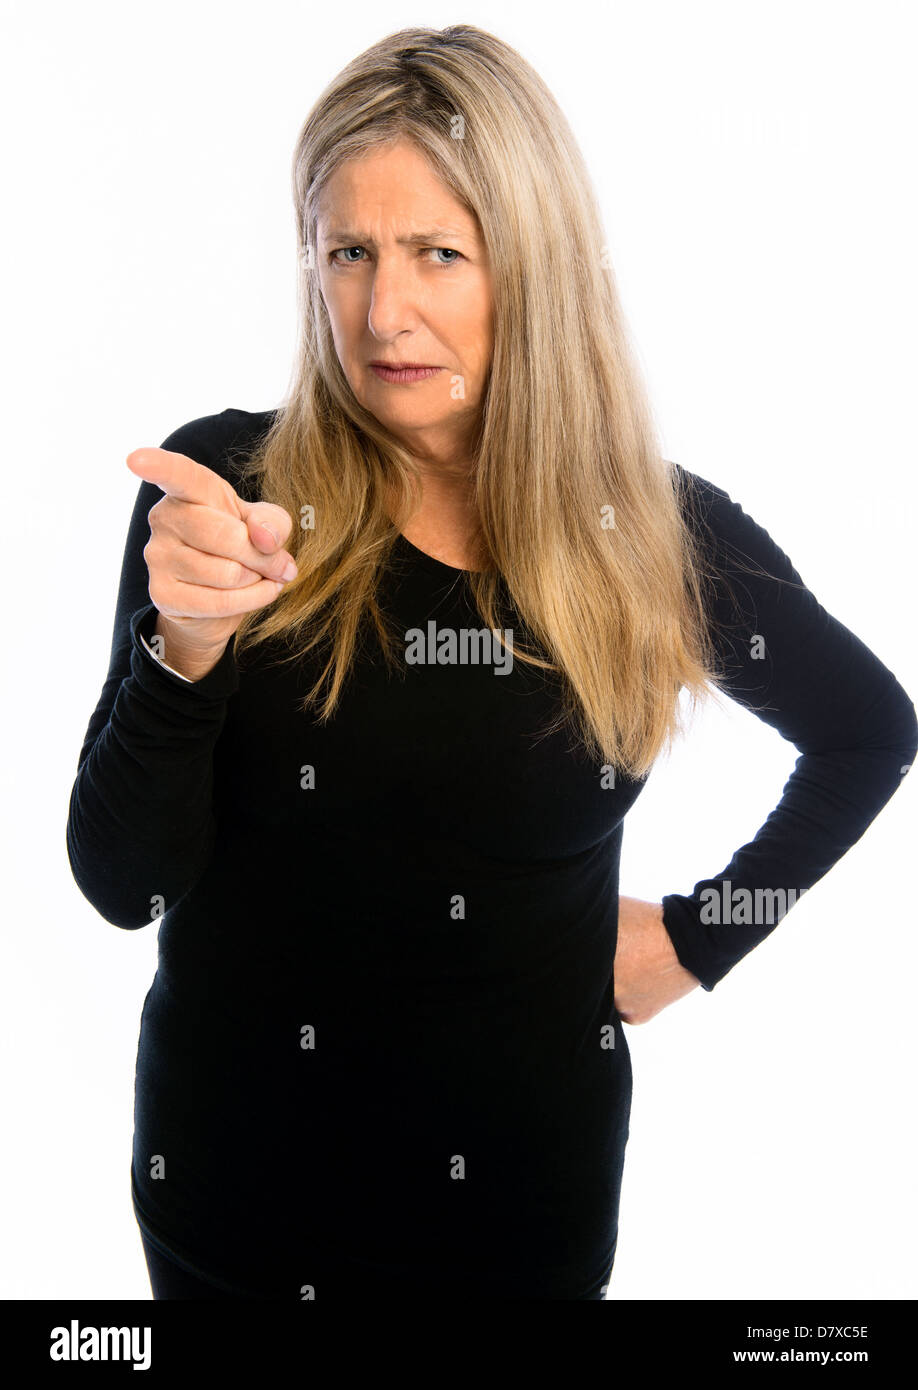 Senior woman wagging finger in front of white background - Stock Image